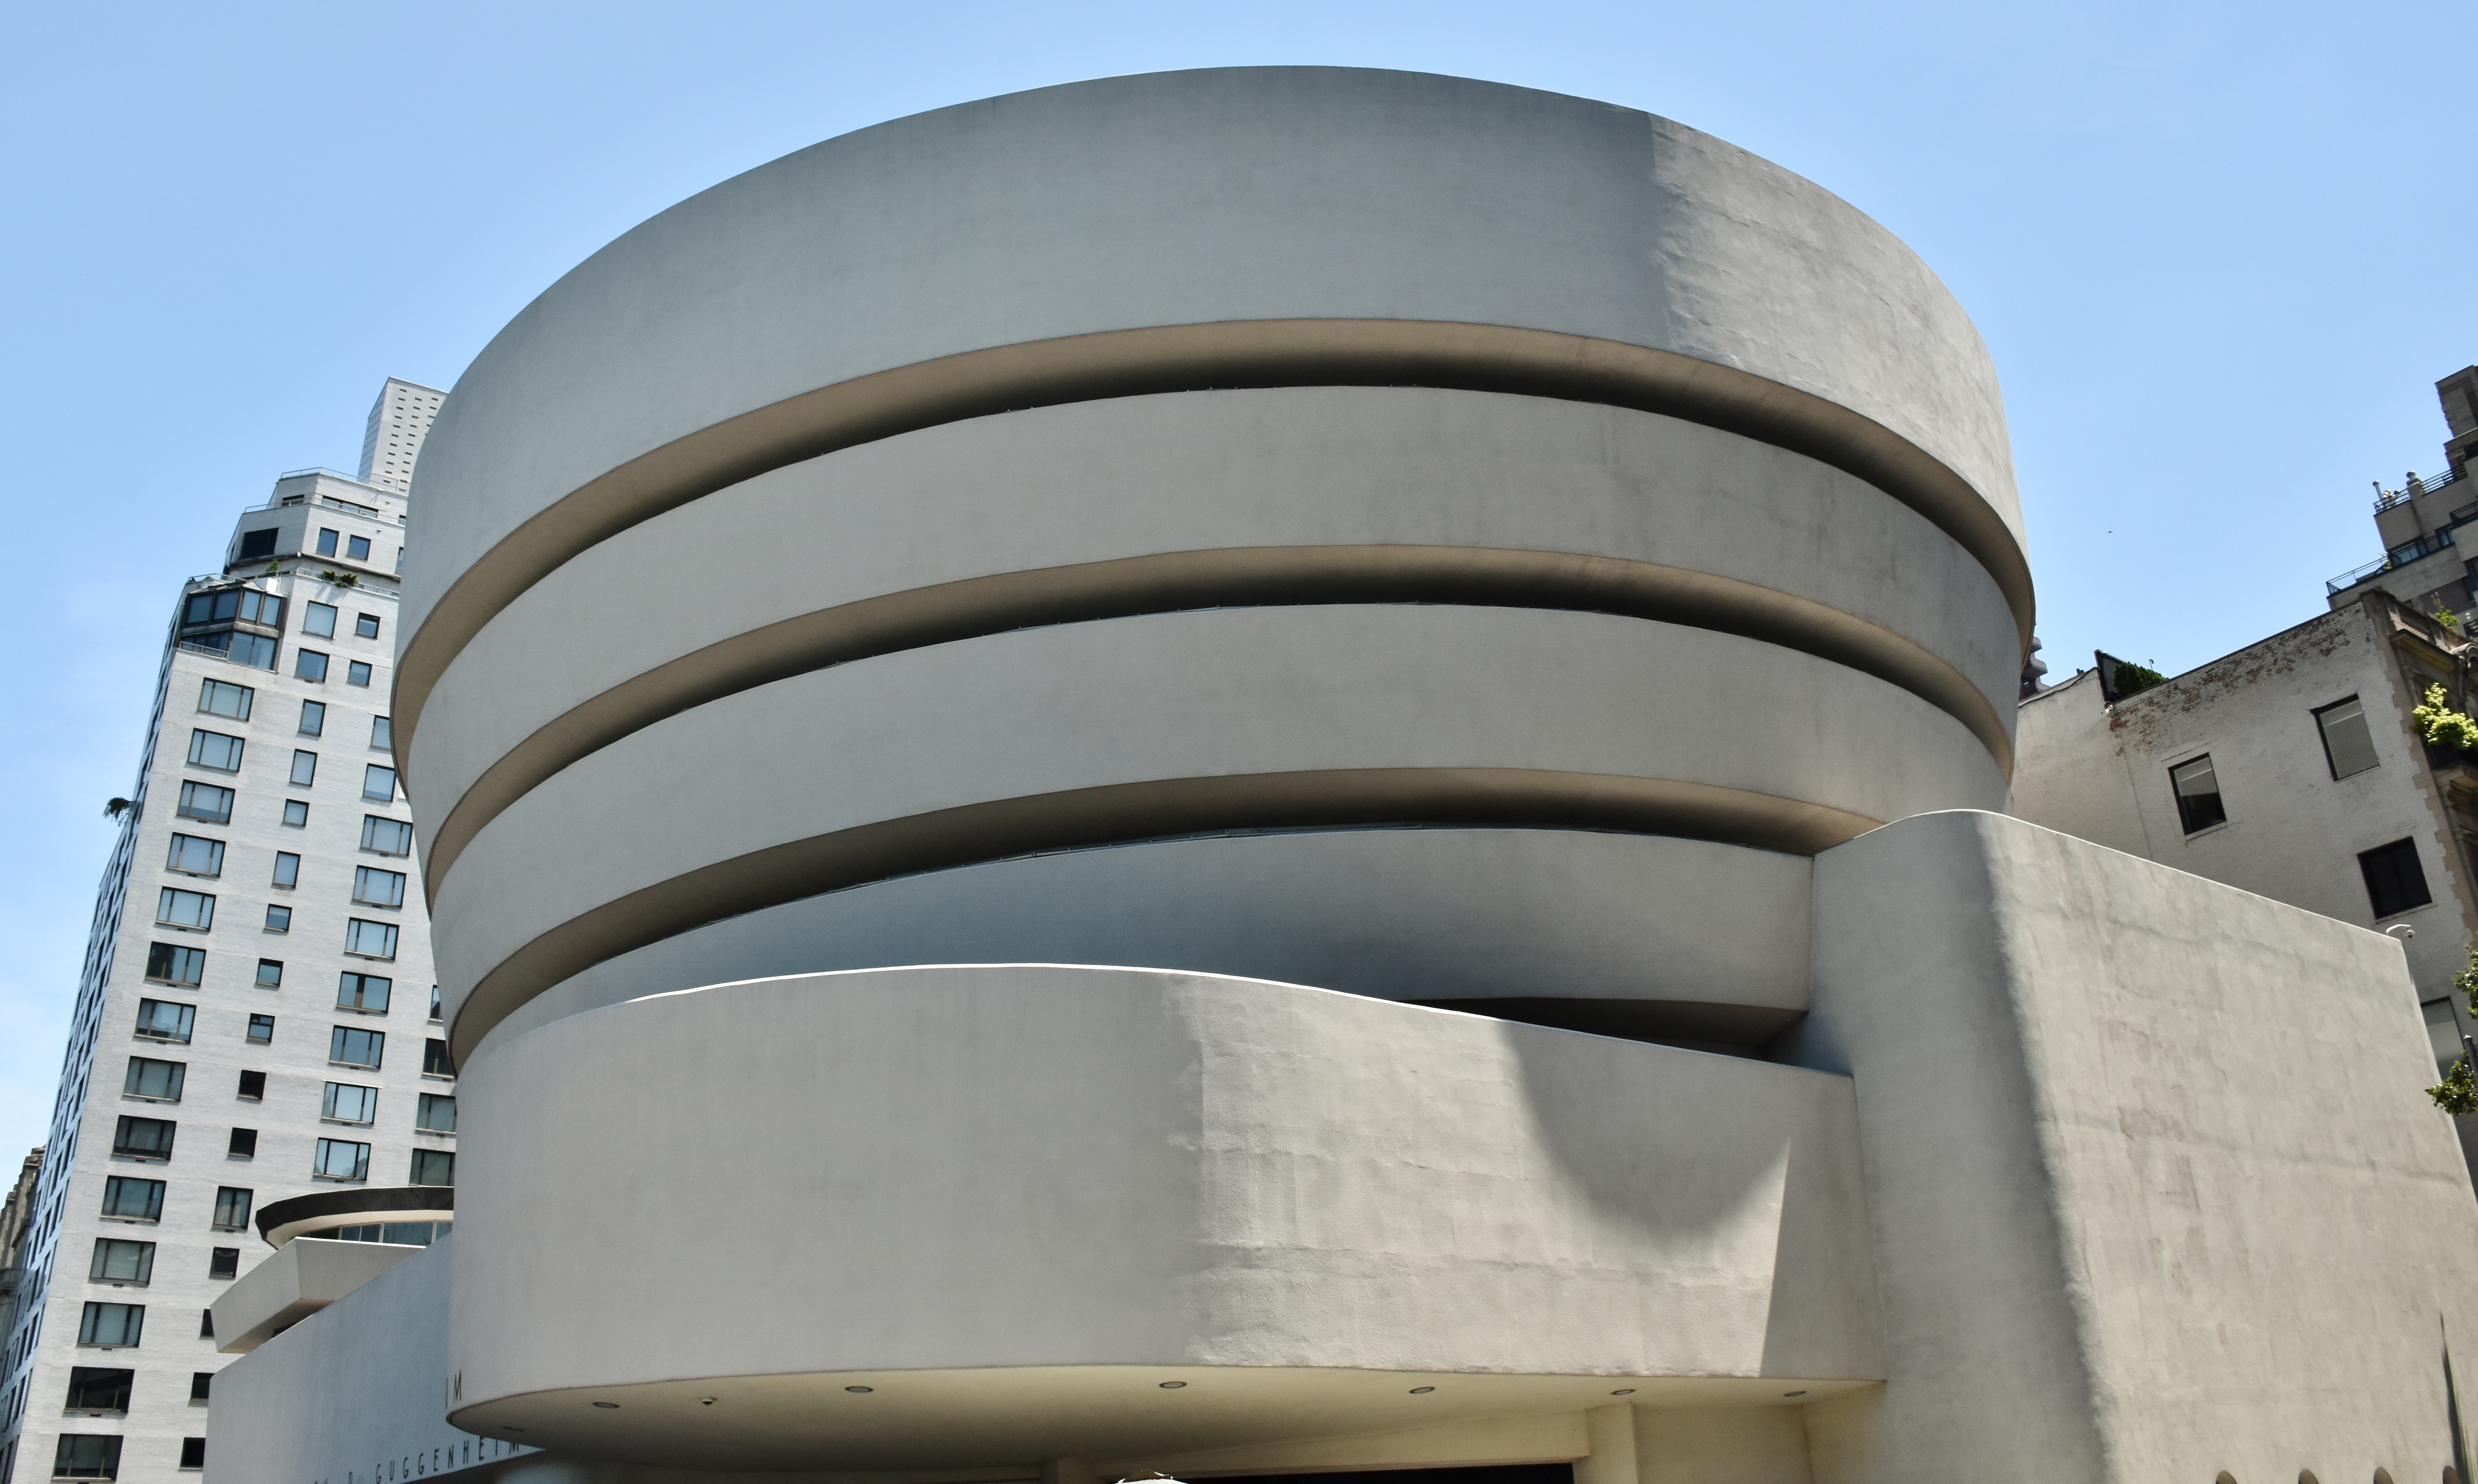 This July 1, 2017 photo shows the Solomon R. Guggenheim Museum in New York.